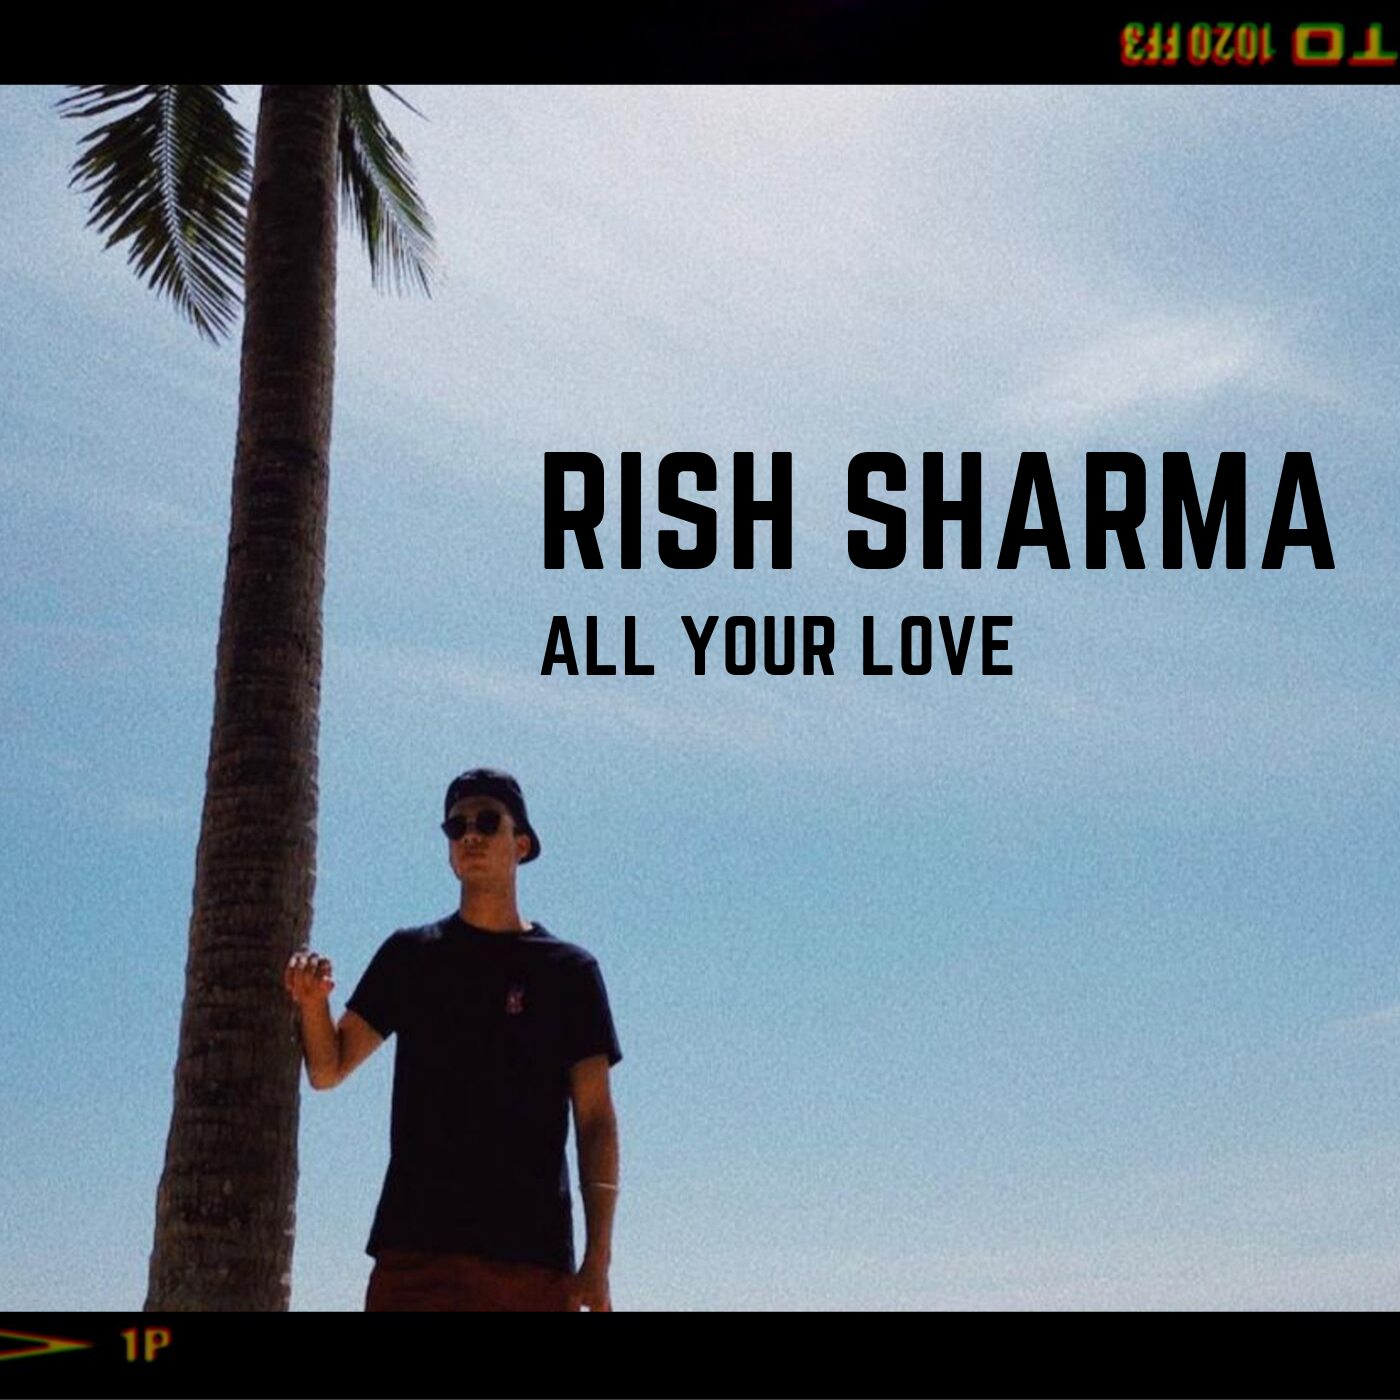 Rish sharma   all your love %28artwork%29